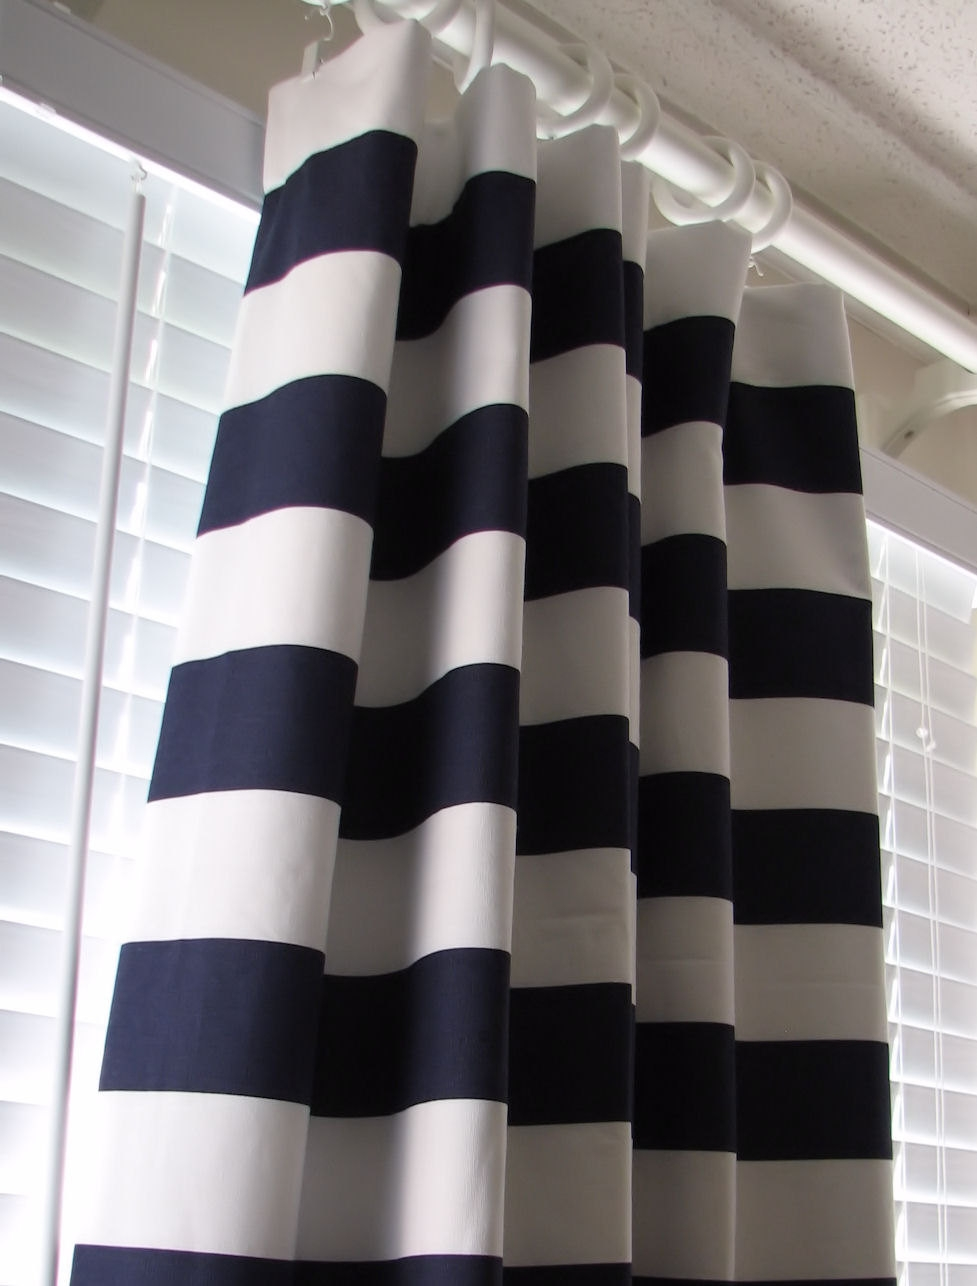 25 Collection Of Navy And White Polka Dot Curtains Curtain Ideas